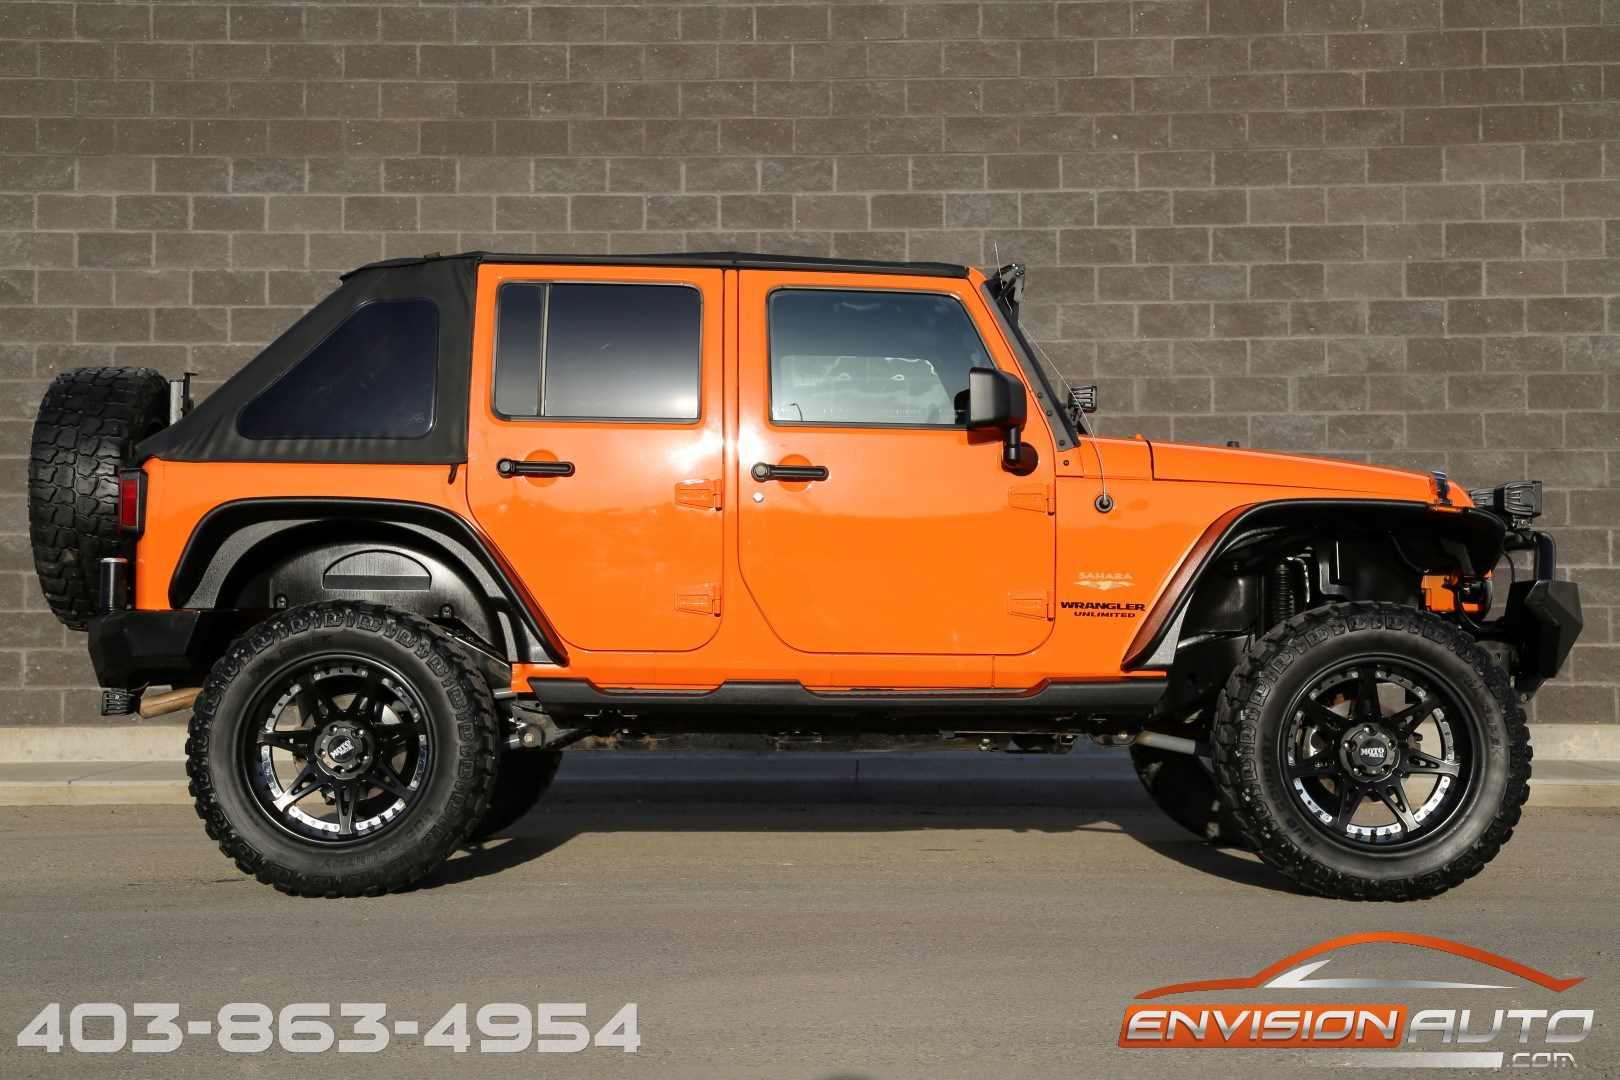 2012 jeep wrangler unlimited sahara bds lift 35in tires envision auto. Black Bedroom Furniture Sets. Home Design Ideas